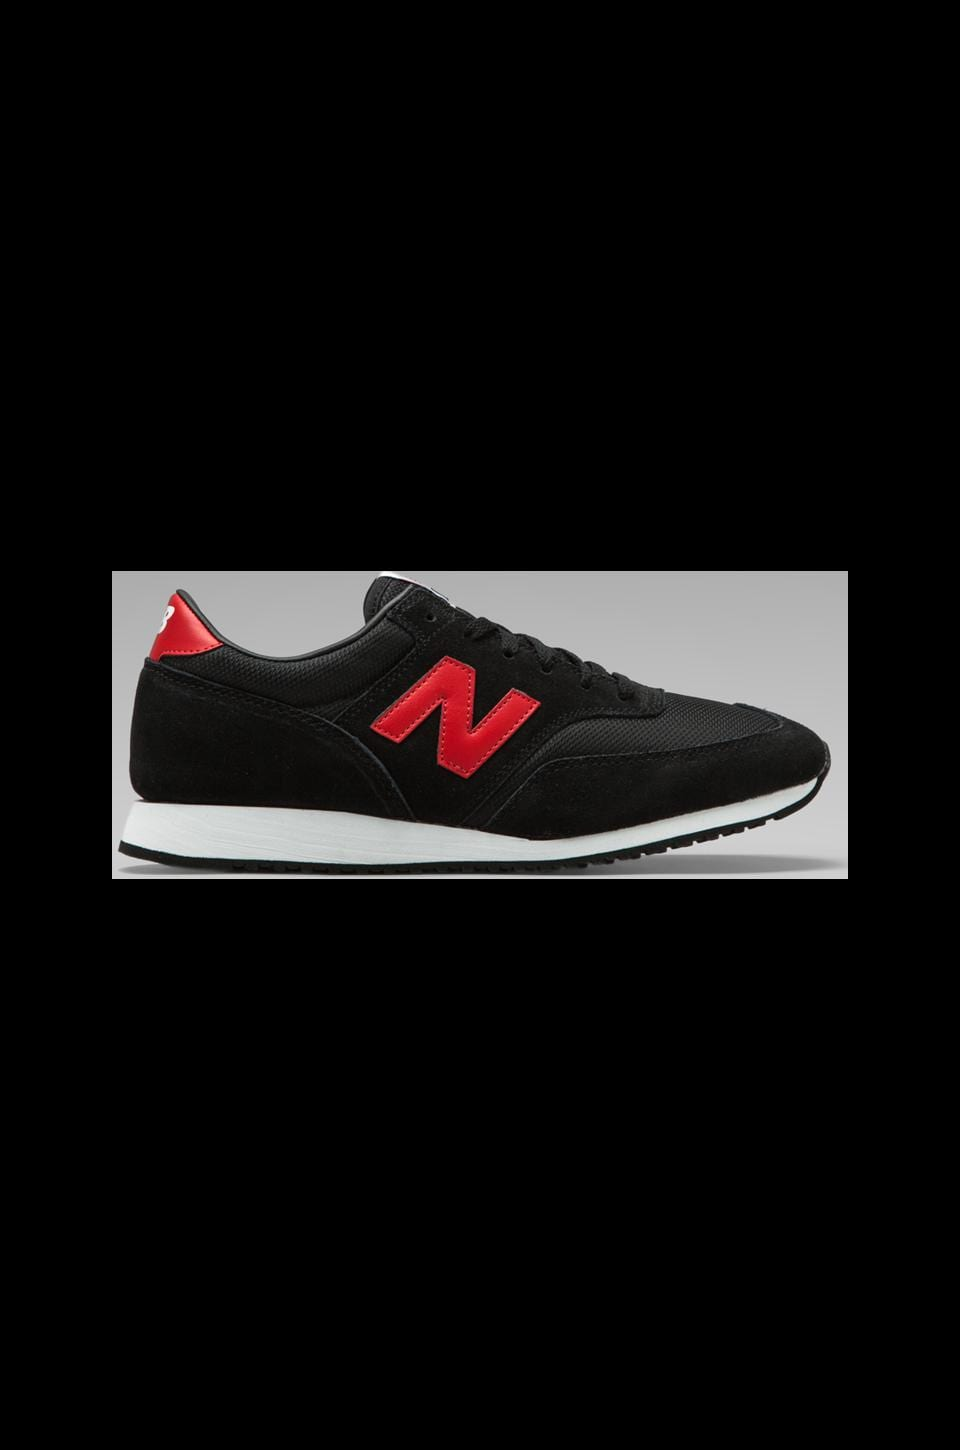 New Balance CM620 in Black